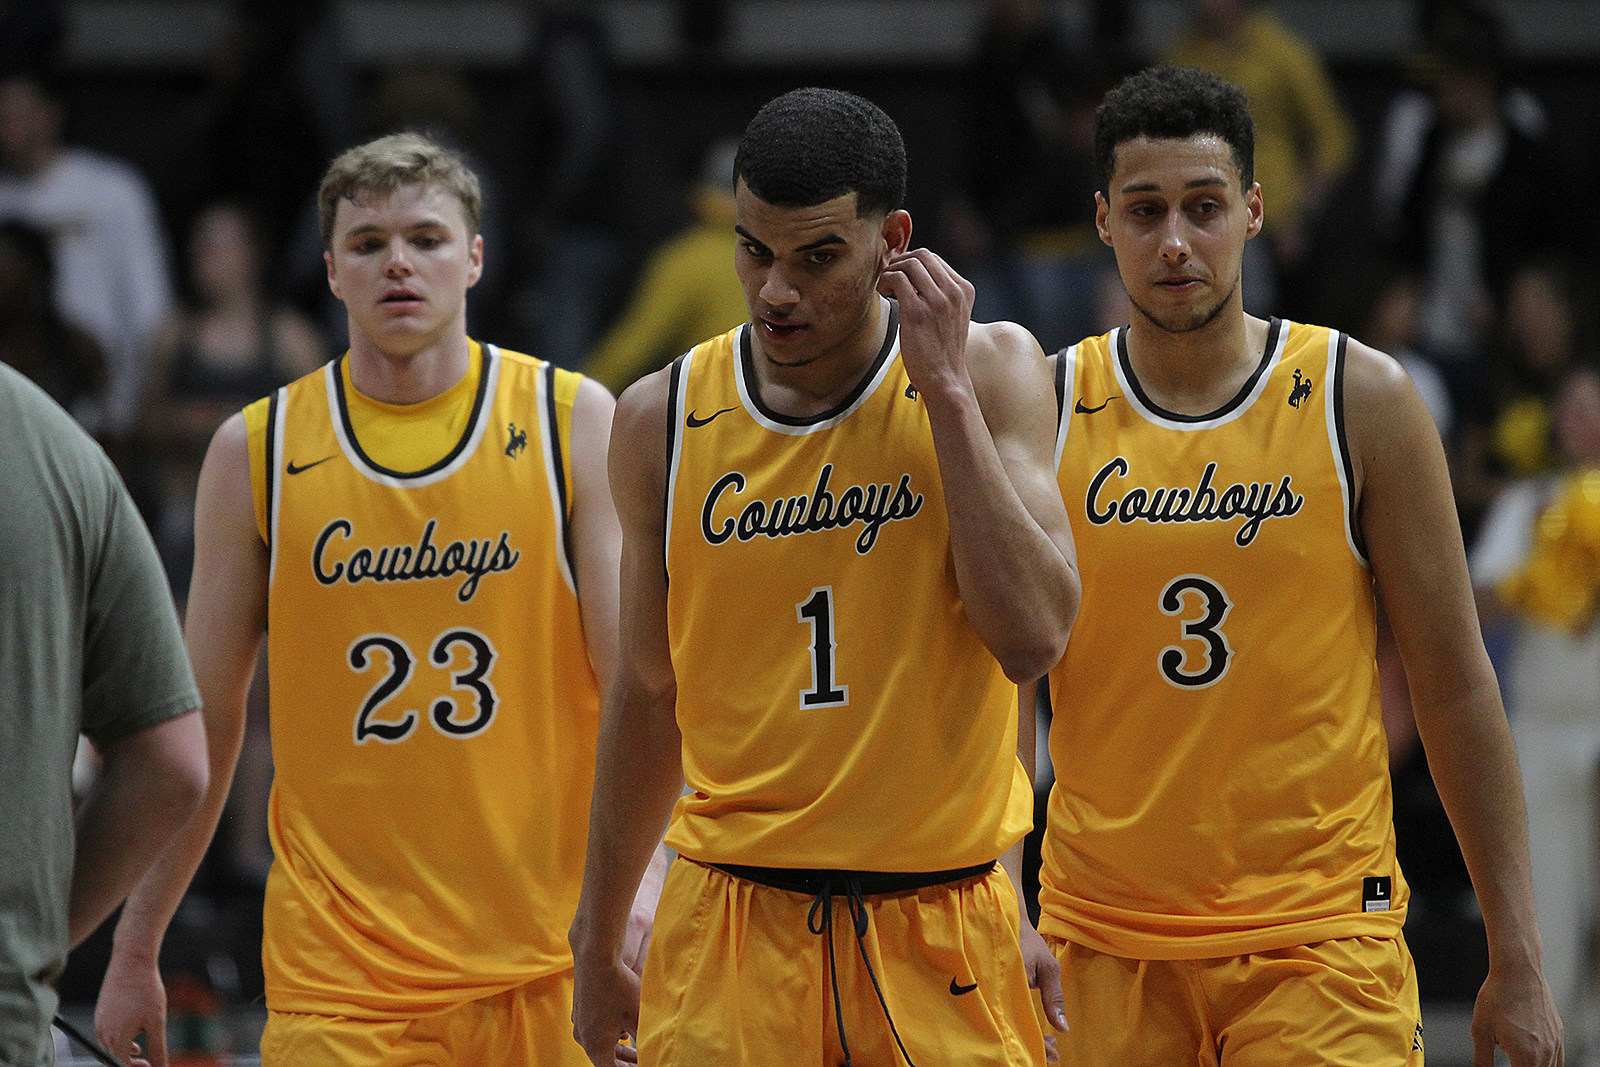 5 things to know before wyoming basketball's post-season appearances